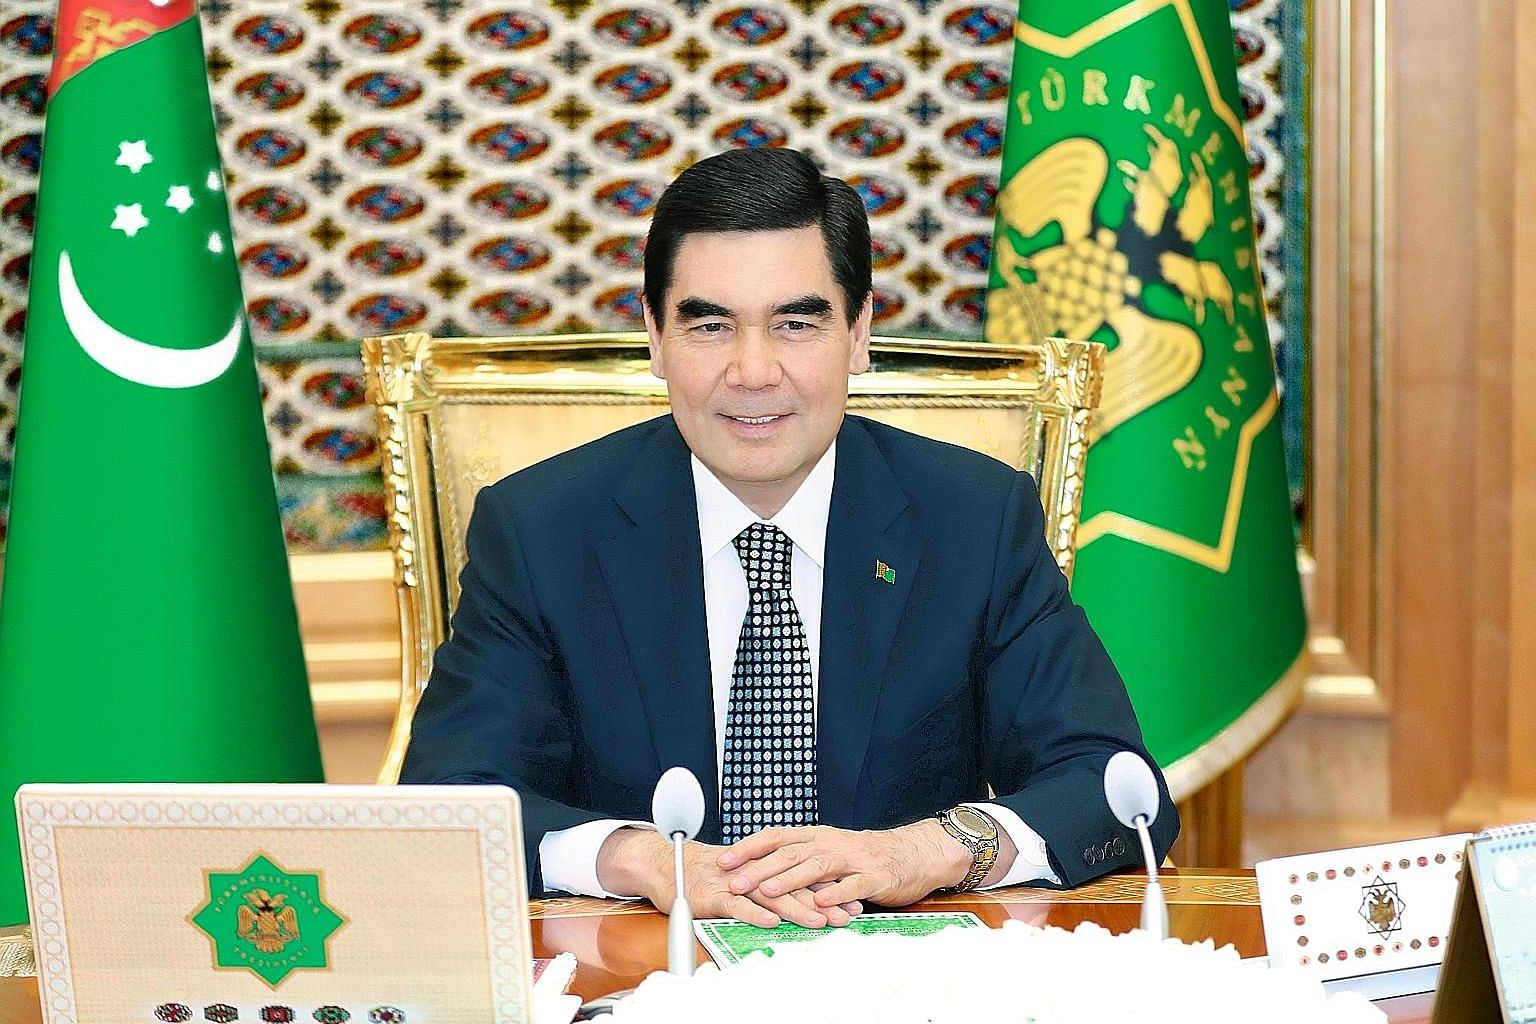 Turkmenistan President Gurbanguly Berdimuhammedow will meet Singapore business leaders to discuss commercial opportunities in his country. He will also witness the signing of two agreements and a memorandum of understanding on legal cooperation.